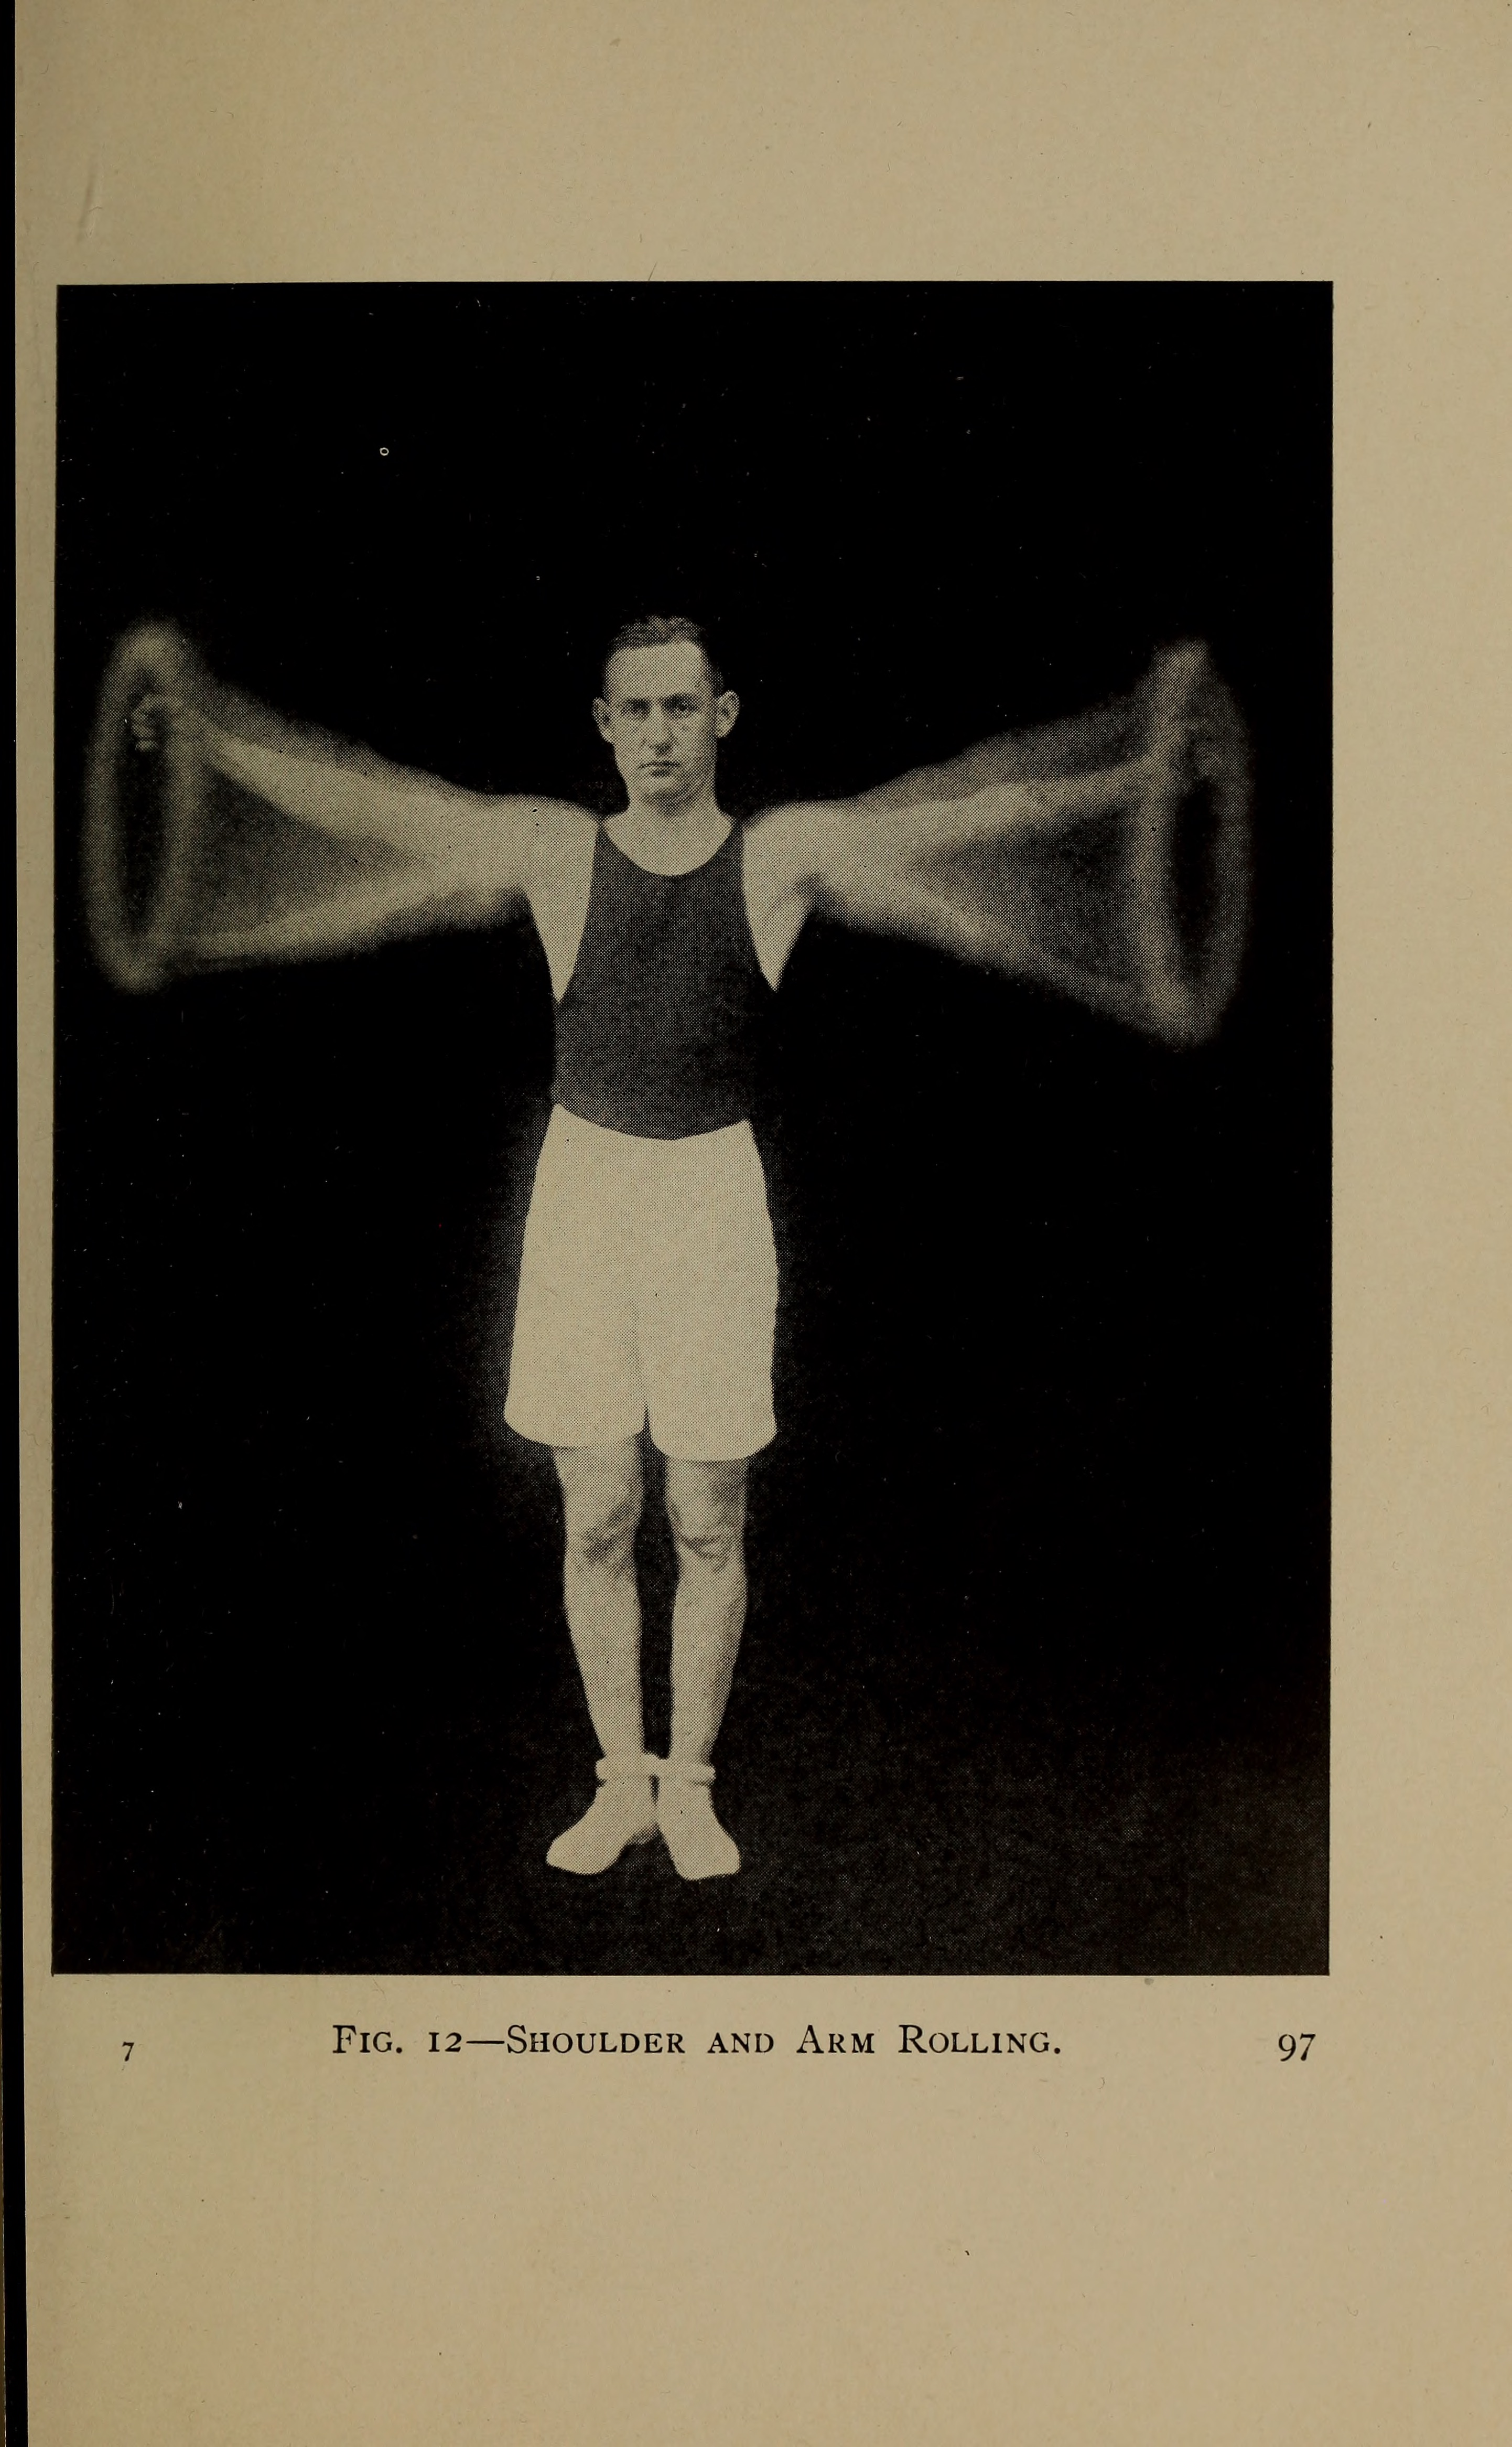 Physical training for business men; basic rules and simple exercises for gaining assured control of the physical self byHancock, Harrie Irving, 1868-1922 Publication date 1917